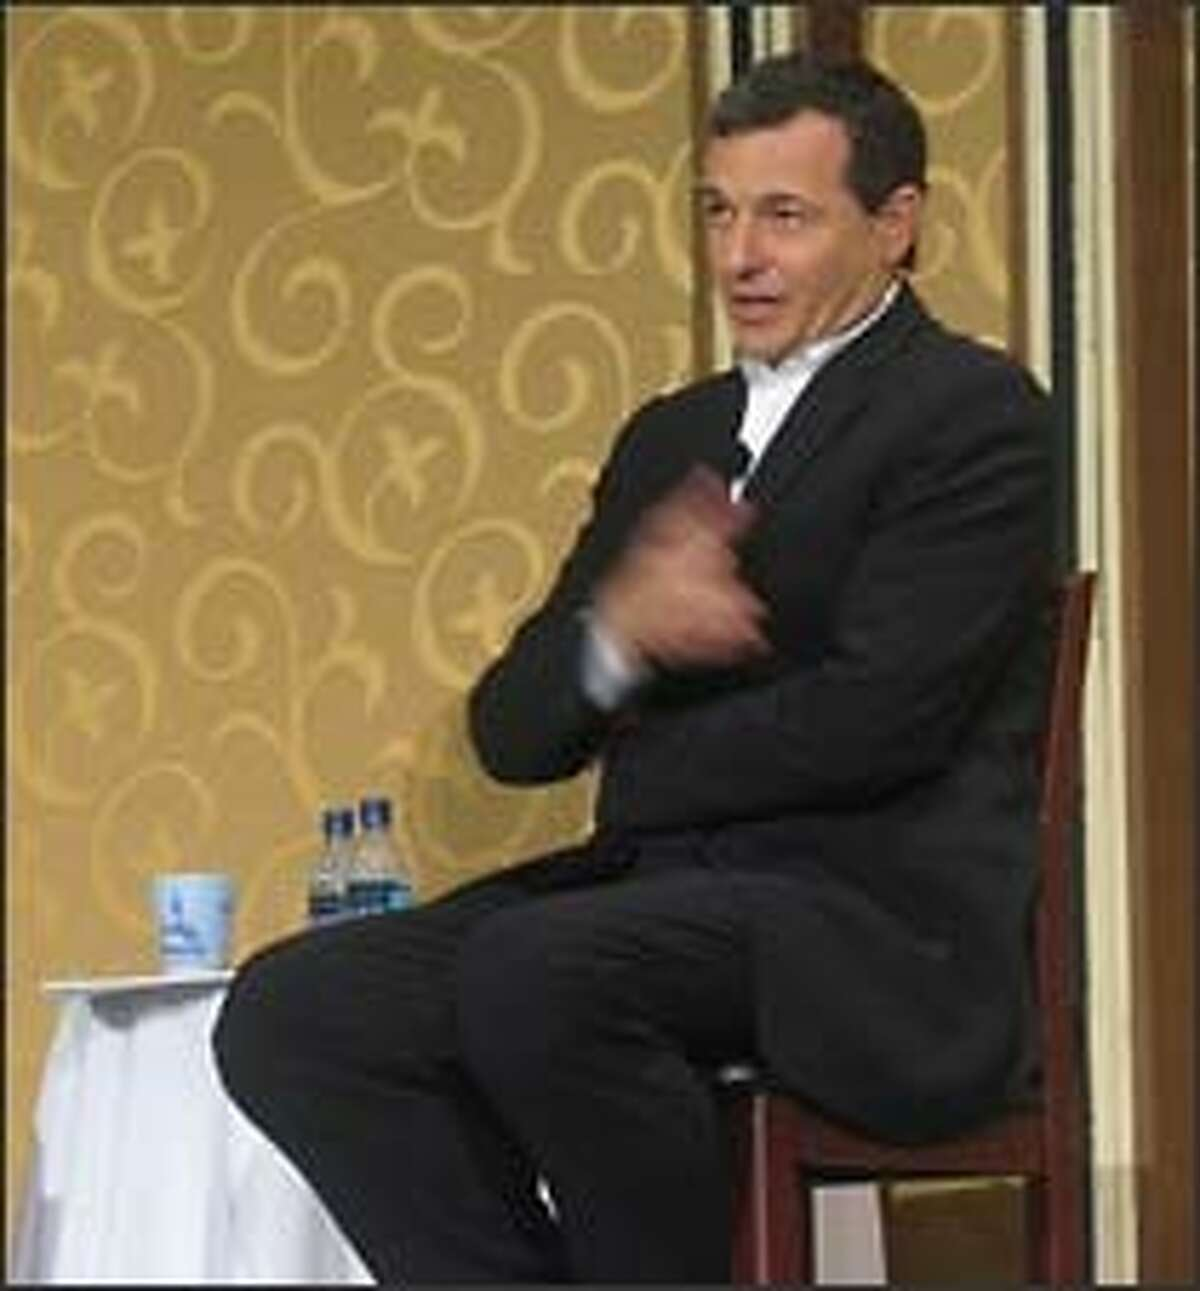 Walt Disney Co. chief executive Robert Iger addresses the Society of American Business Editors and Writers annual conference at the Disneyland Hotel in Anaheim.